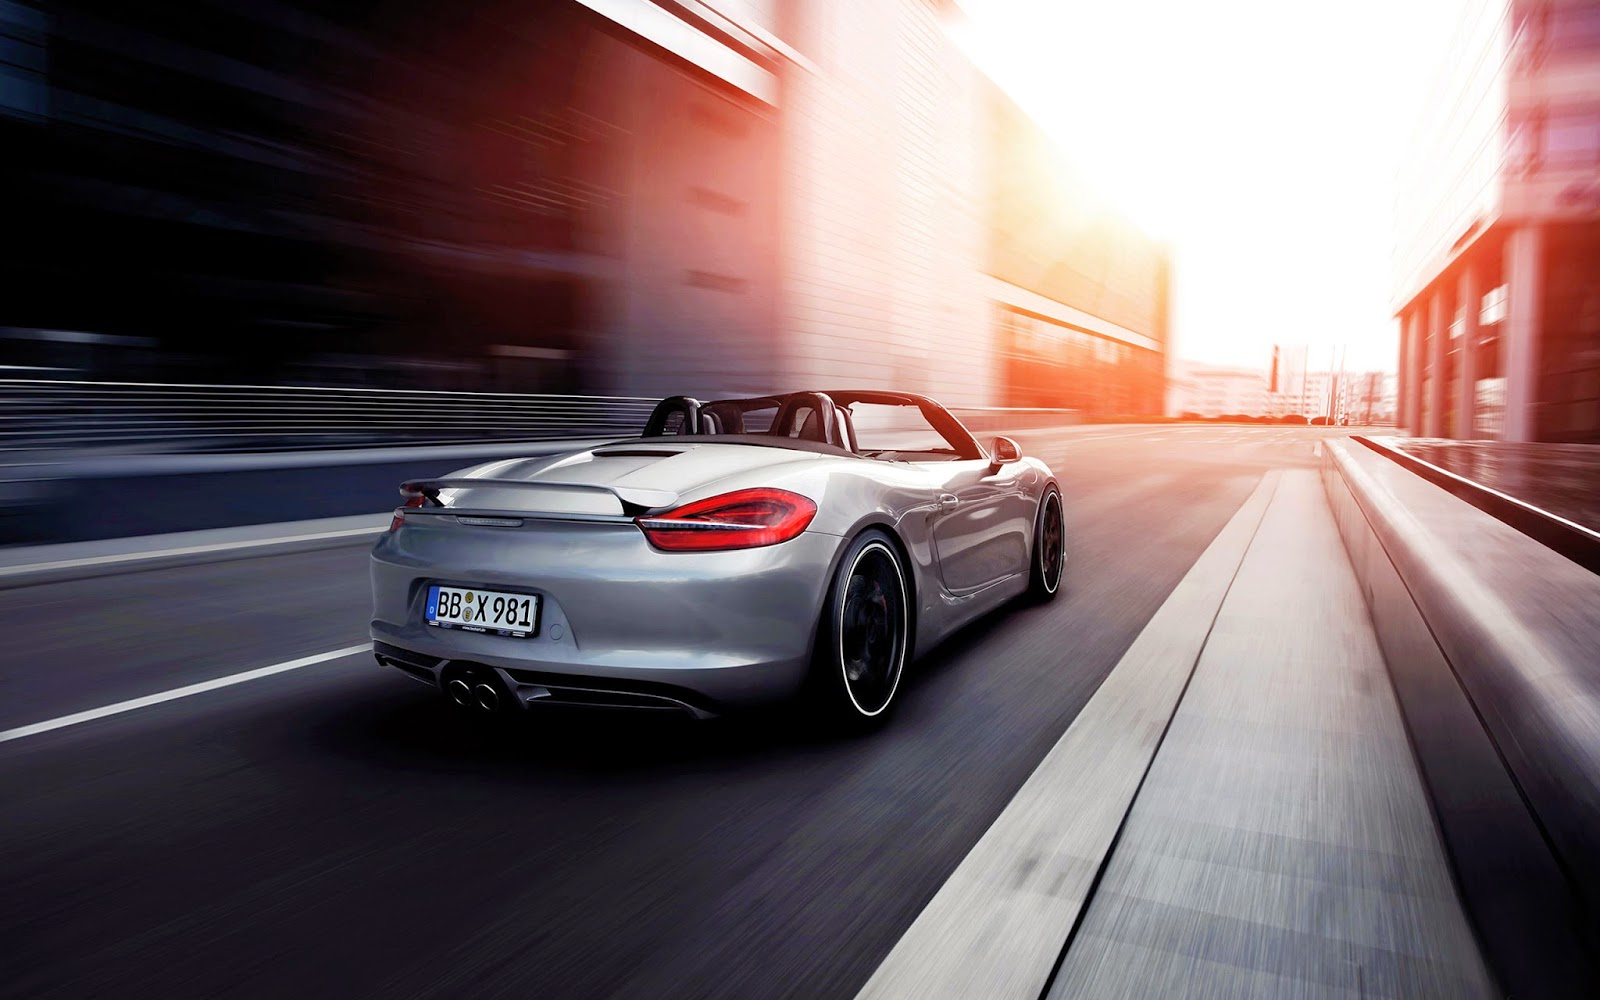 2014 Porsche Boxster HD Wallpaper